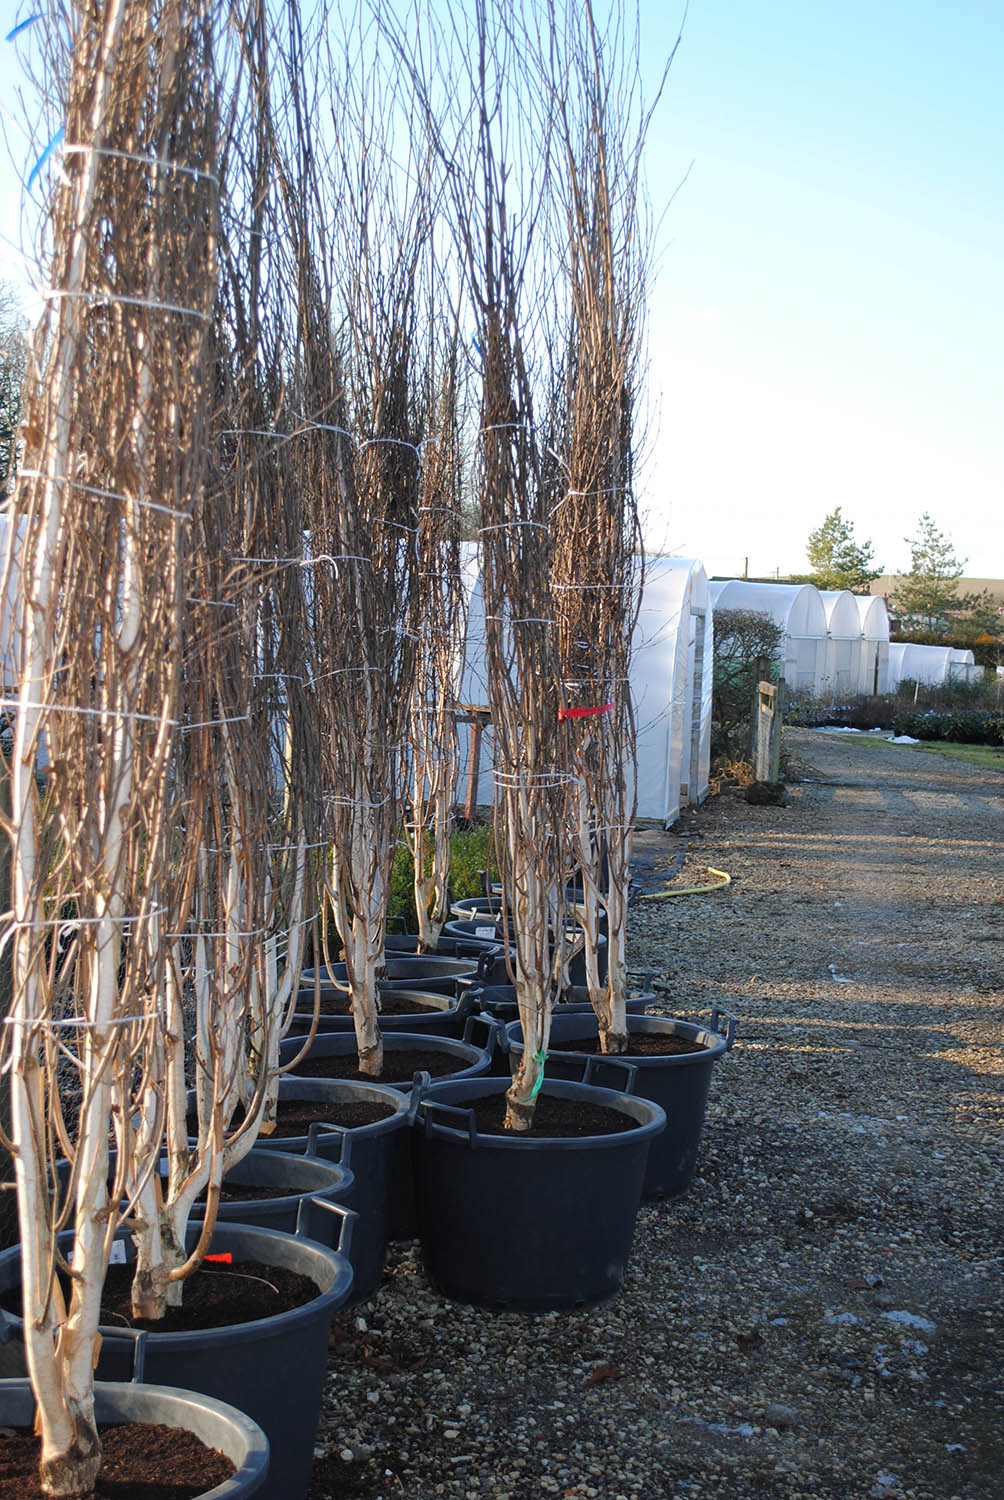 wholesale plant nursery south oxfordshire